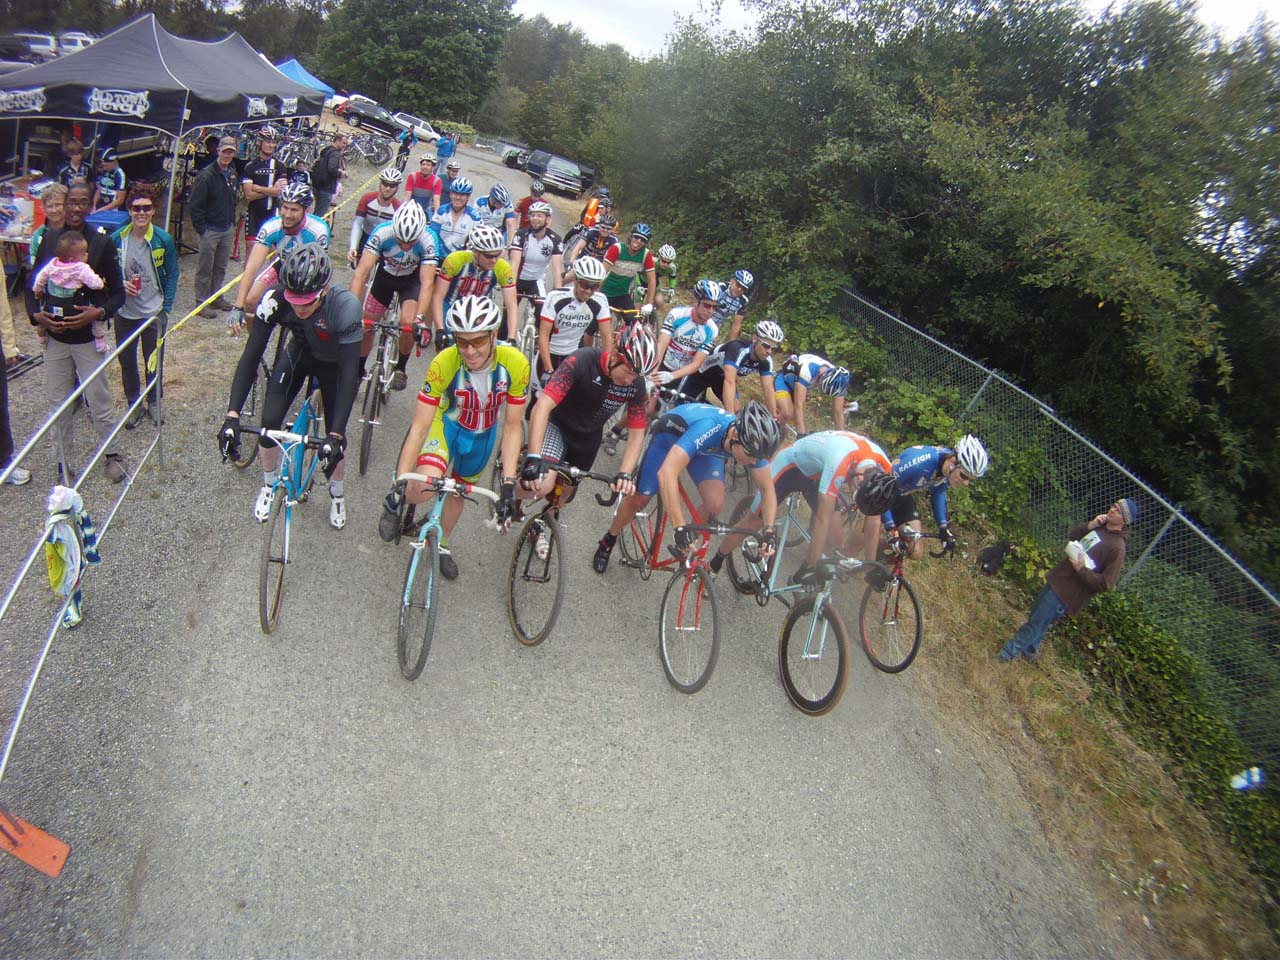 Men's Singlespeed group ready to rumble © Kenton Berg